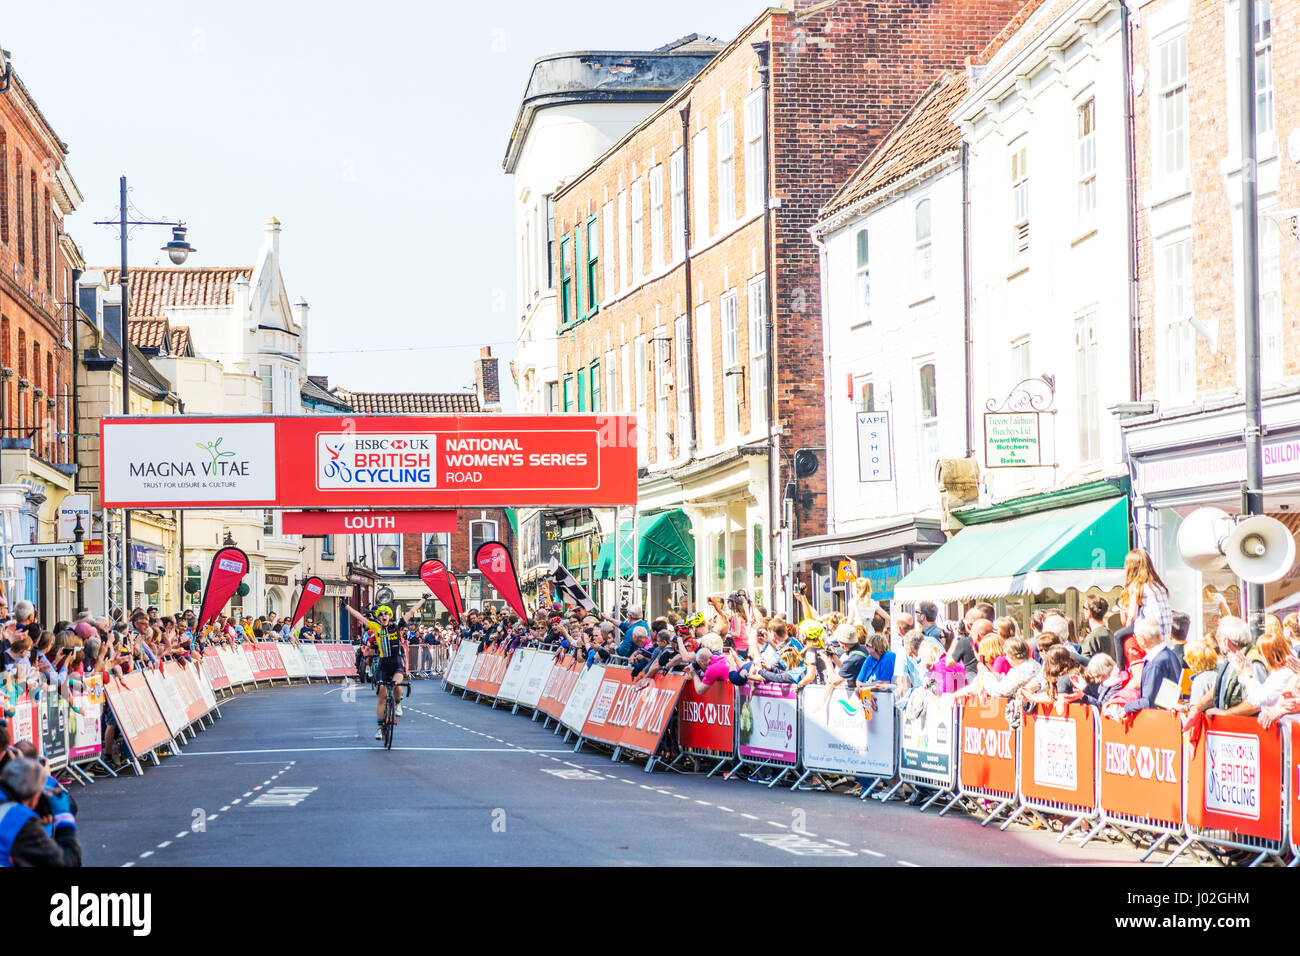 Louth, Lincolnshire, UK. 9th April, 2017. Tour of the Wolds in Louth Lincolnshire UK England 09/04/2017HSBC UK British - Stock Image